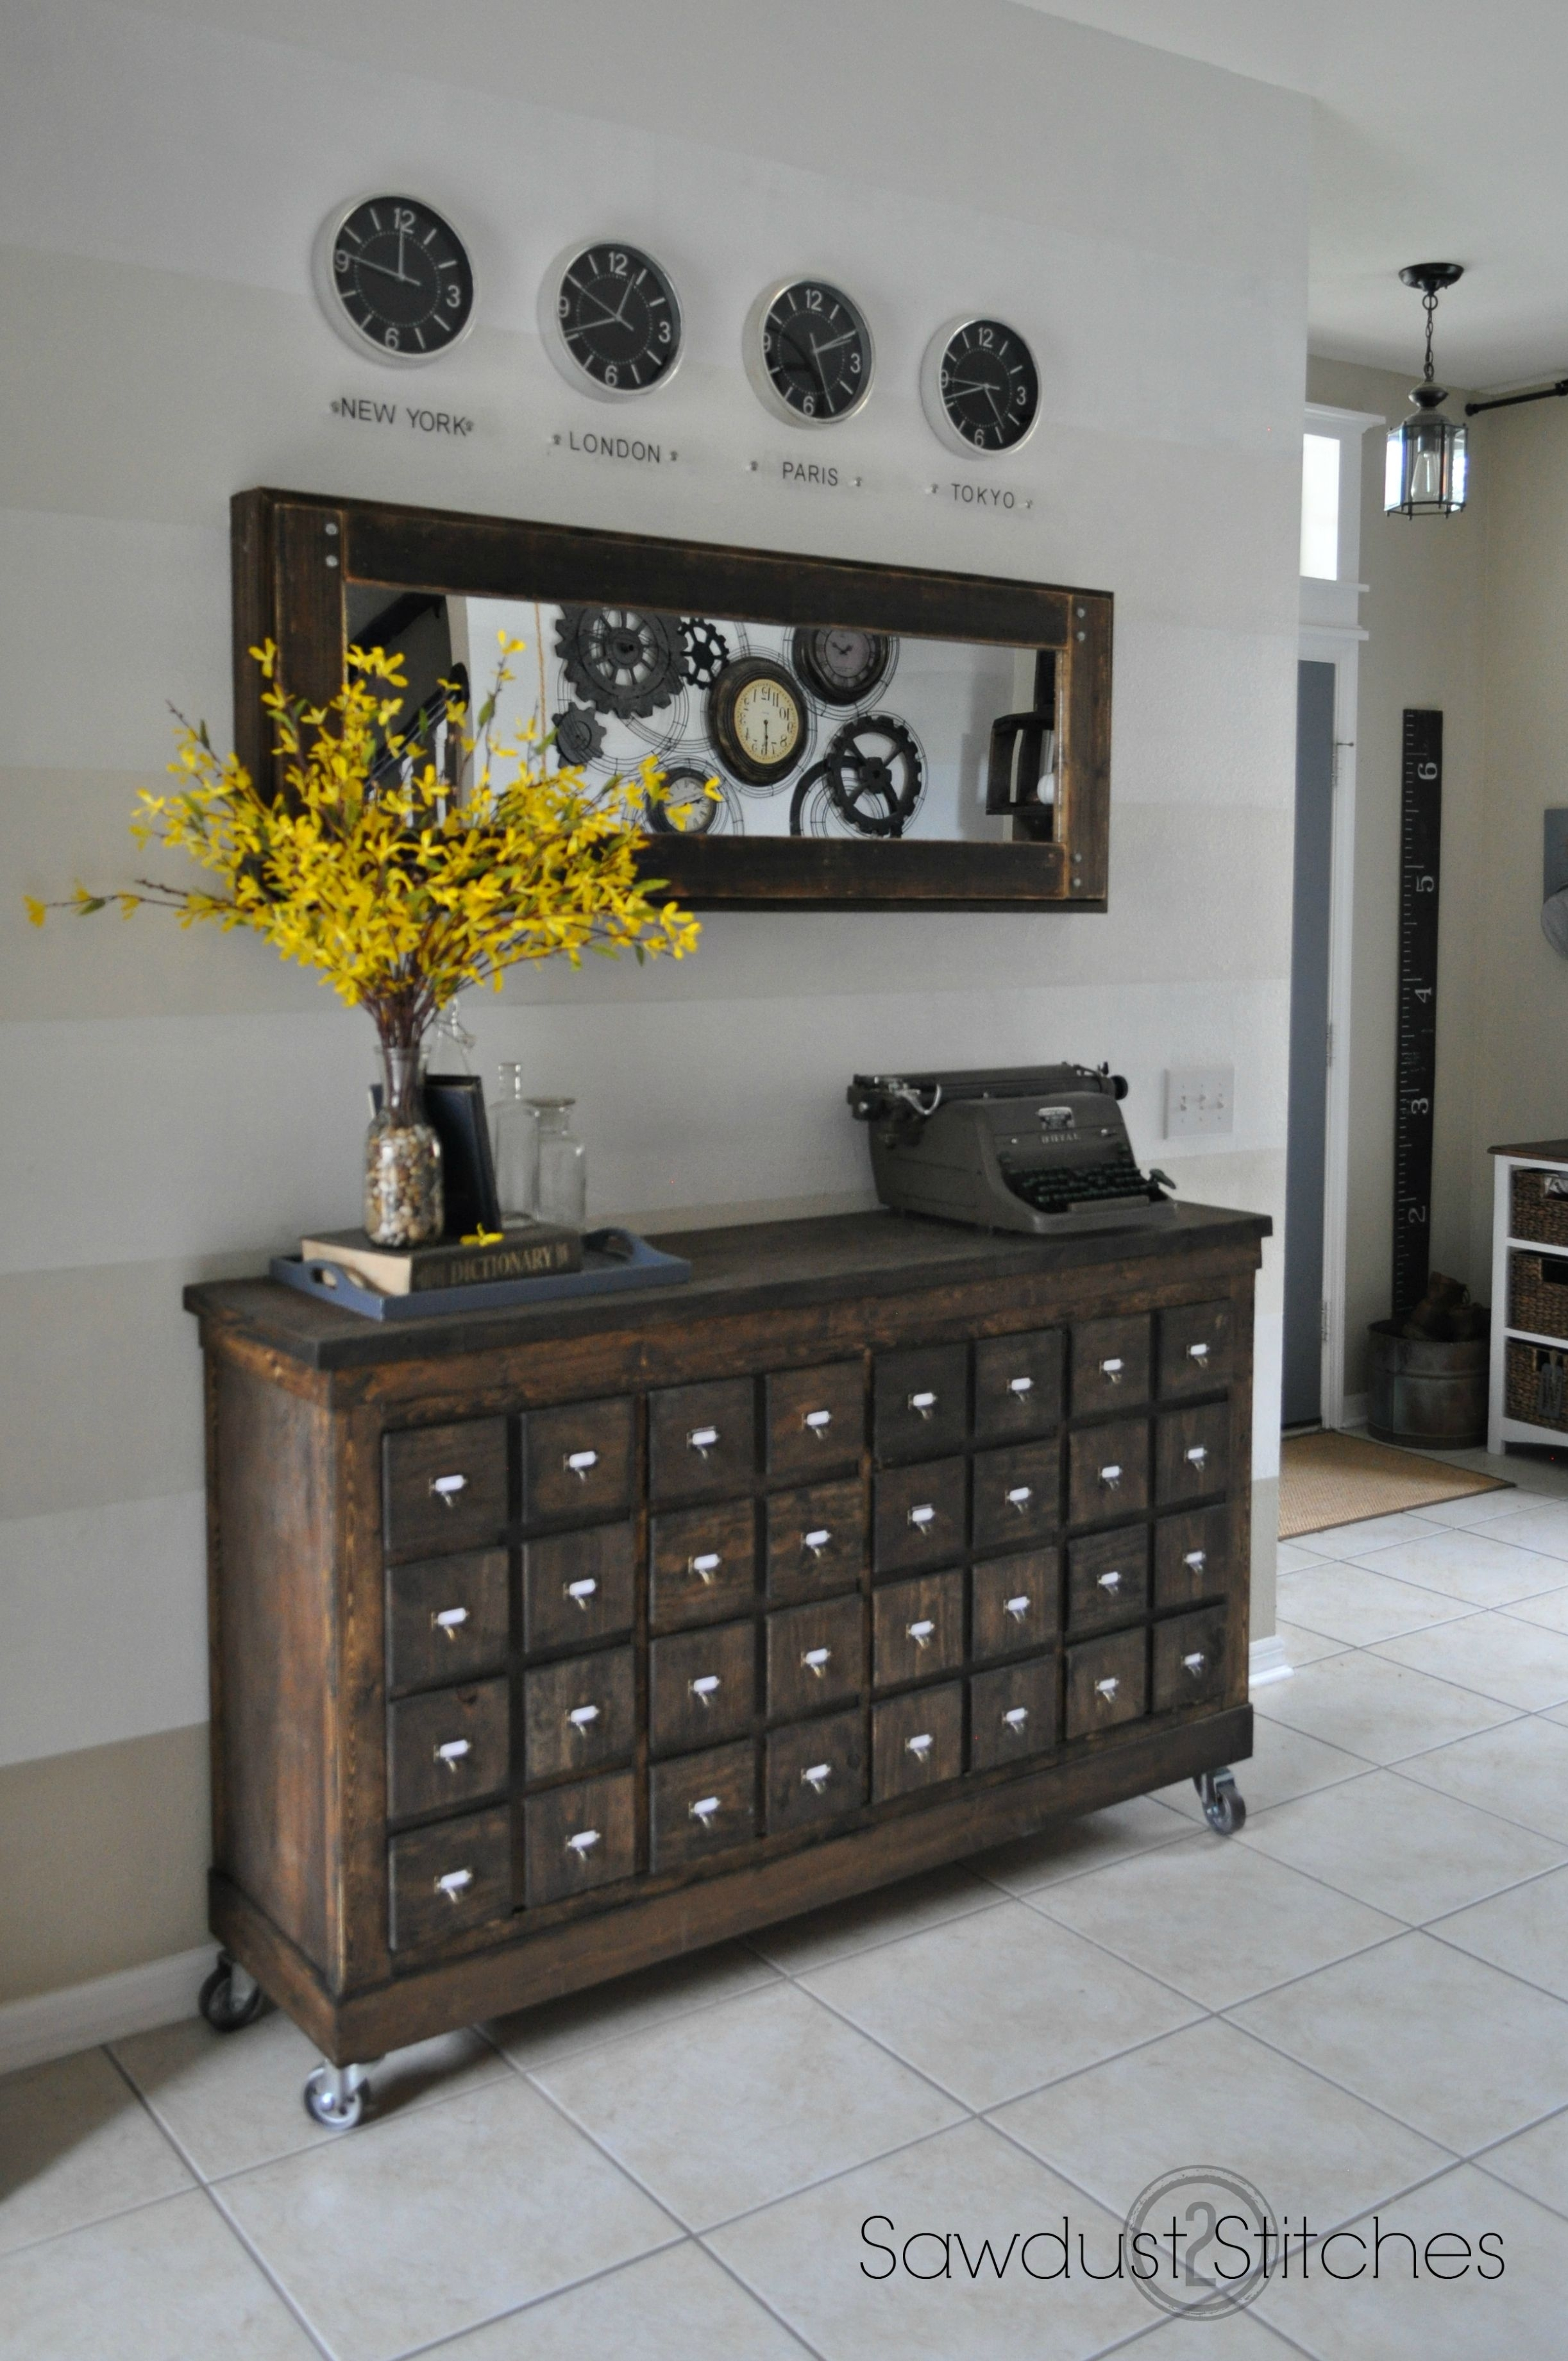 Ikea Cubbies Into A Rustic Apothecary | Diy Home Decor | Pinterest inside Helms Sideboards (Image 18 of 30)